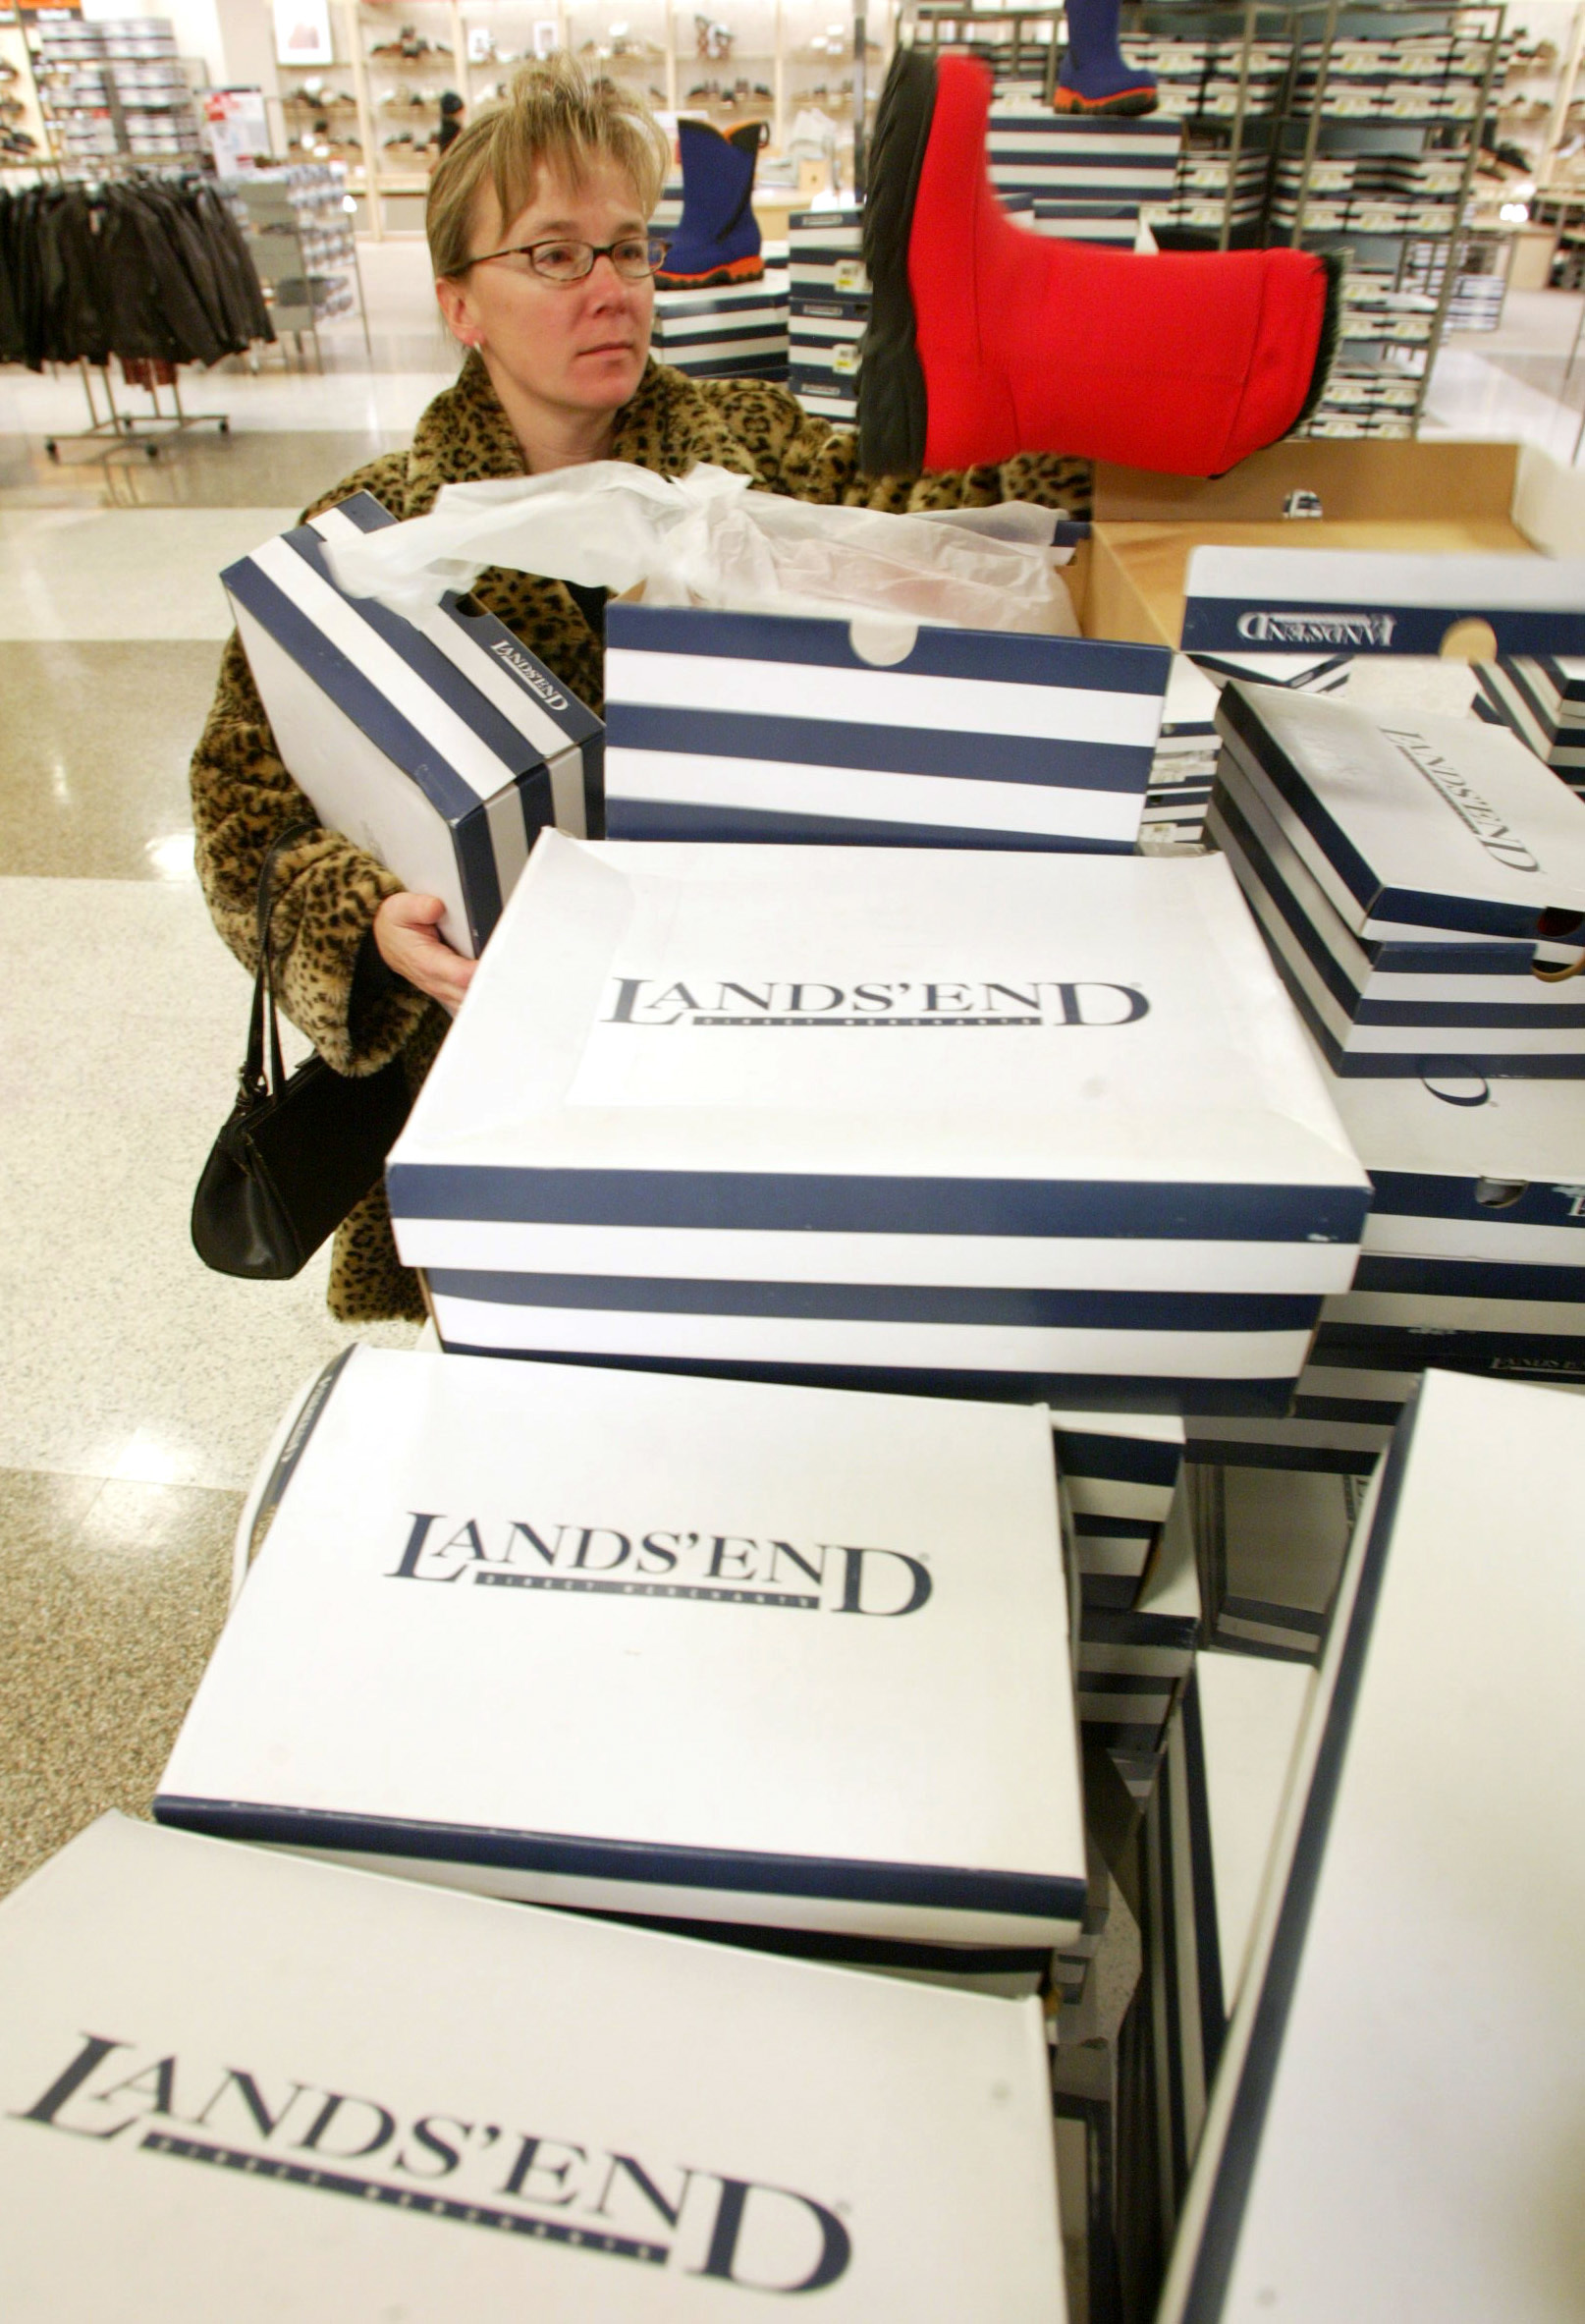 Faye Jaraczwski shops for Lands' End boots at a Sears store